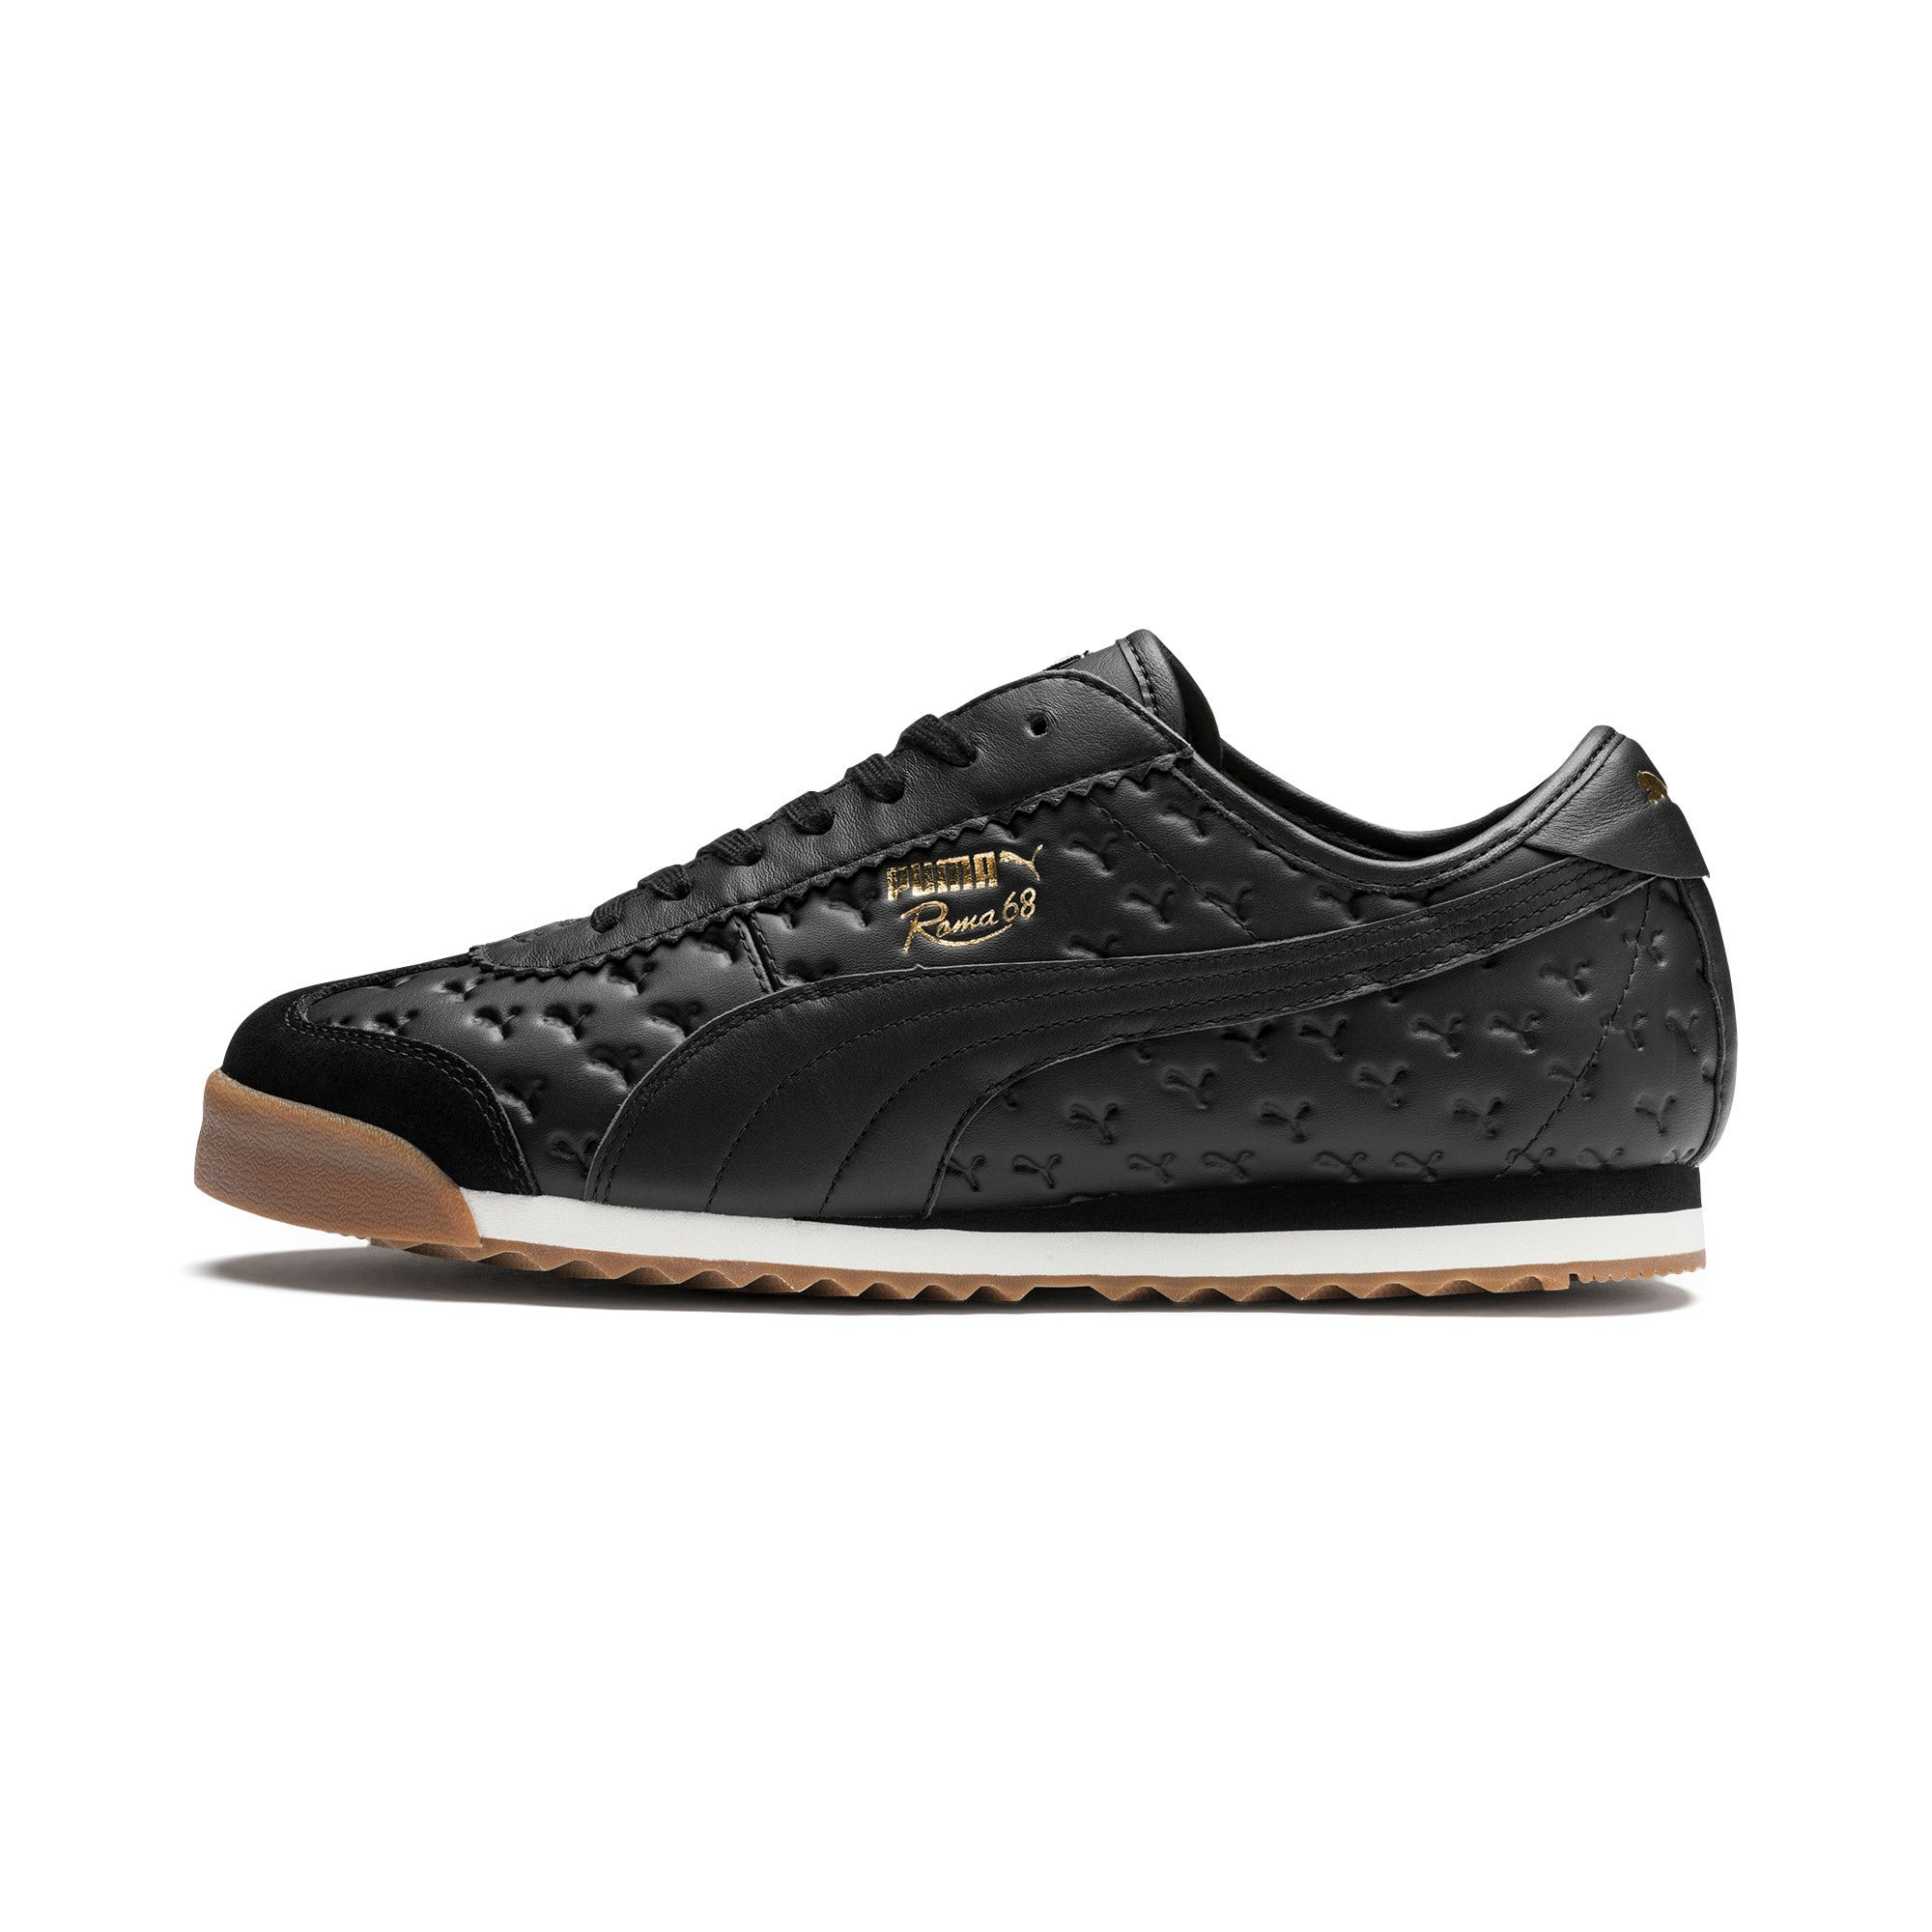 Thumbnail 1 of Roma '68 Gum Sneakers, Puma Black-Puma Black, medium